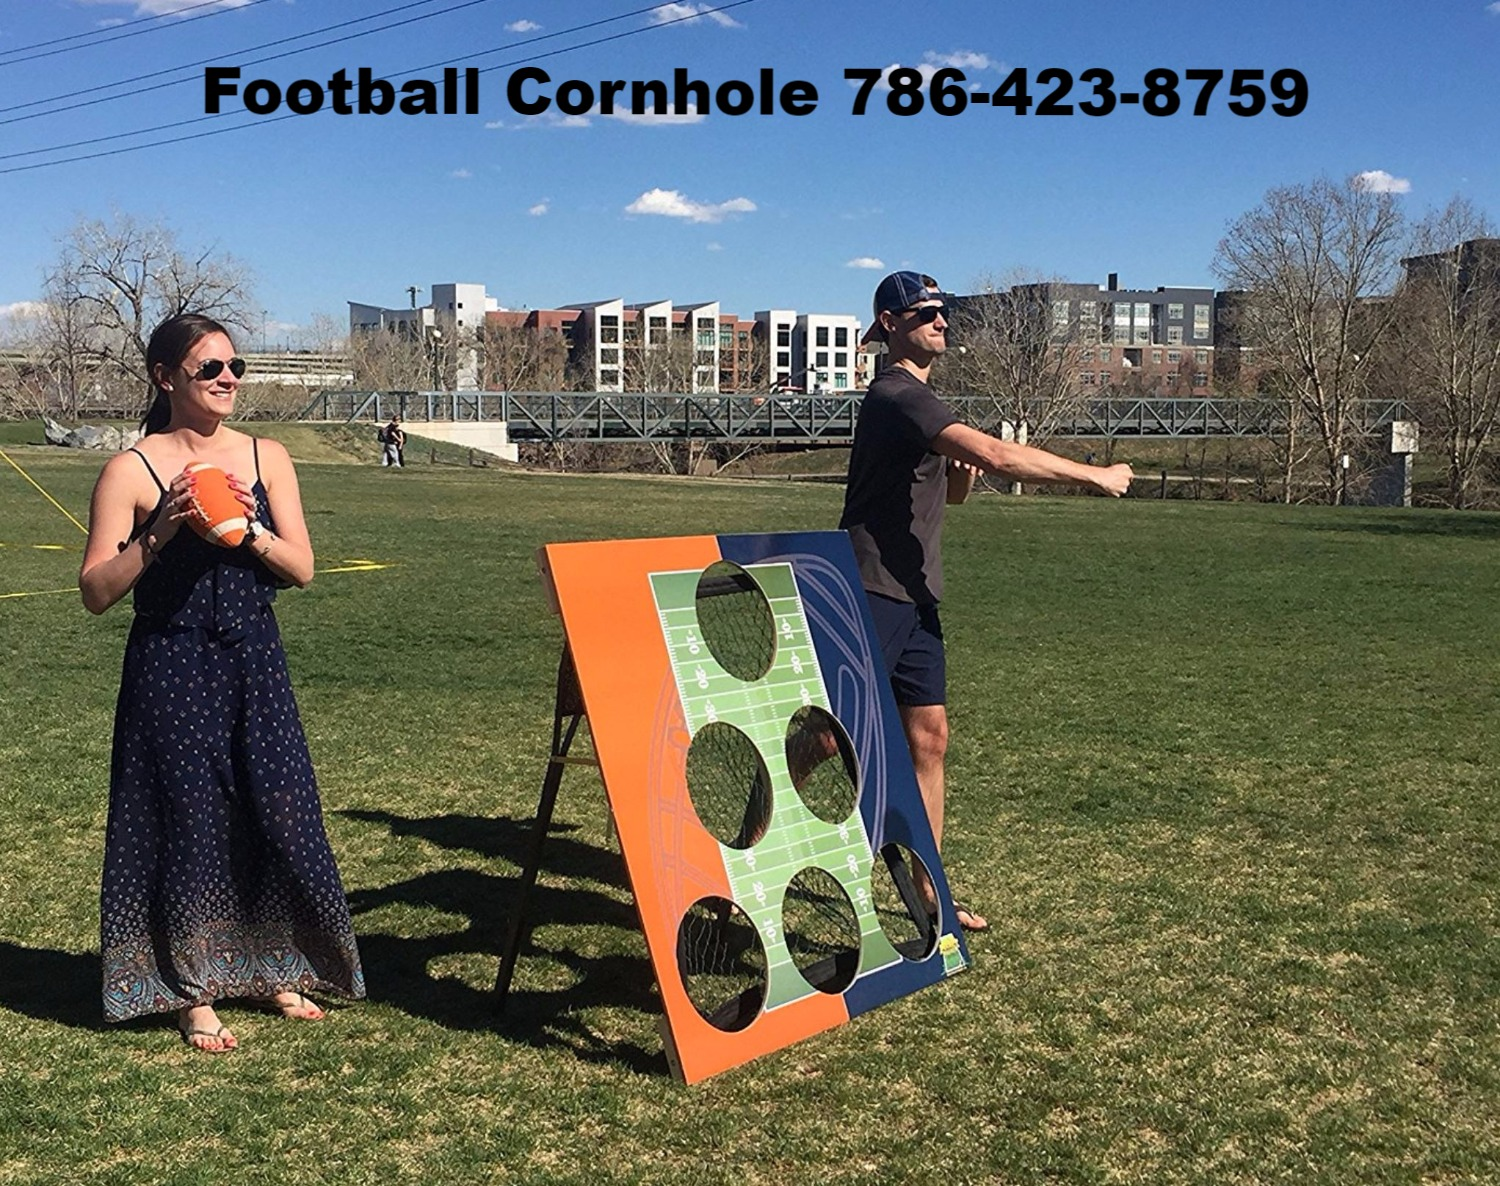 Football Cornhole - Game Party Retnals - Parkland, FL, 786-423-8759_edited